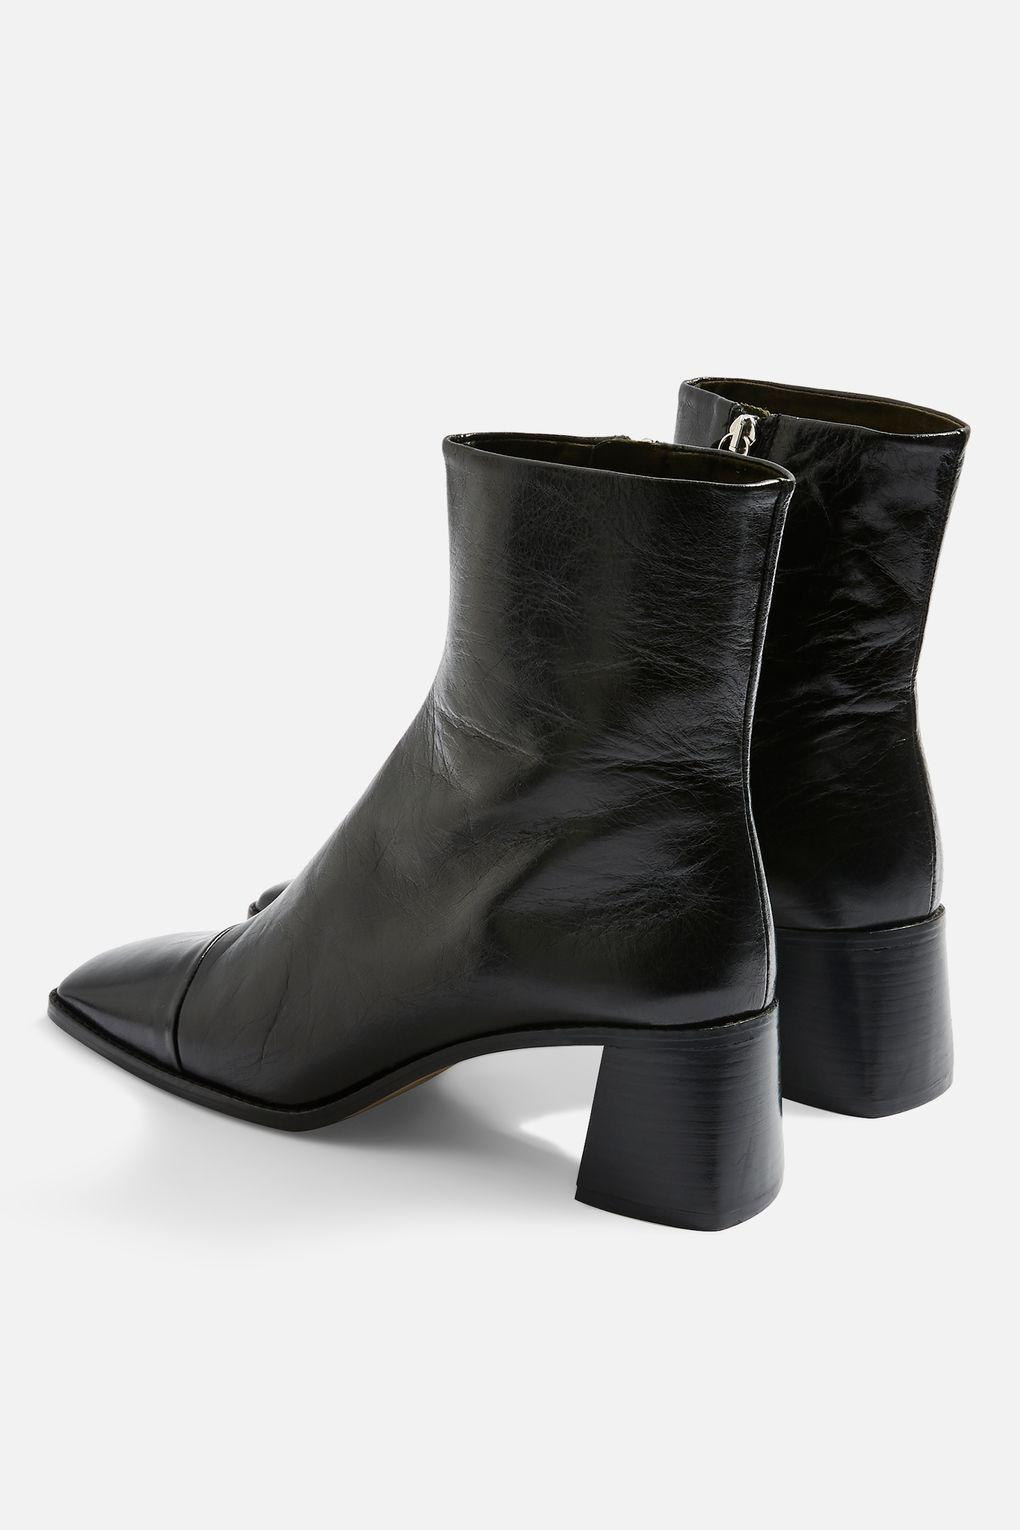 TOPSHOP Leather Muriel Mid Heel Boots in Black